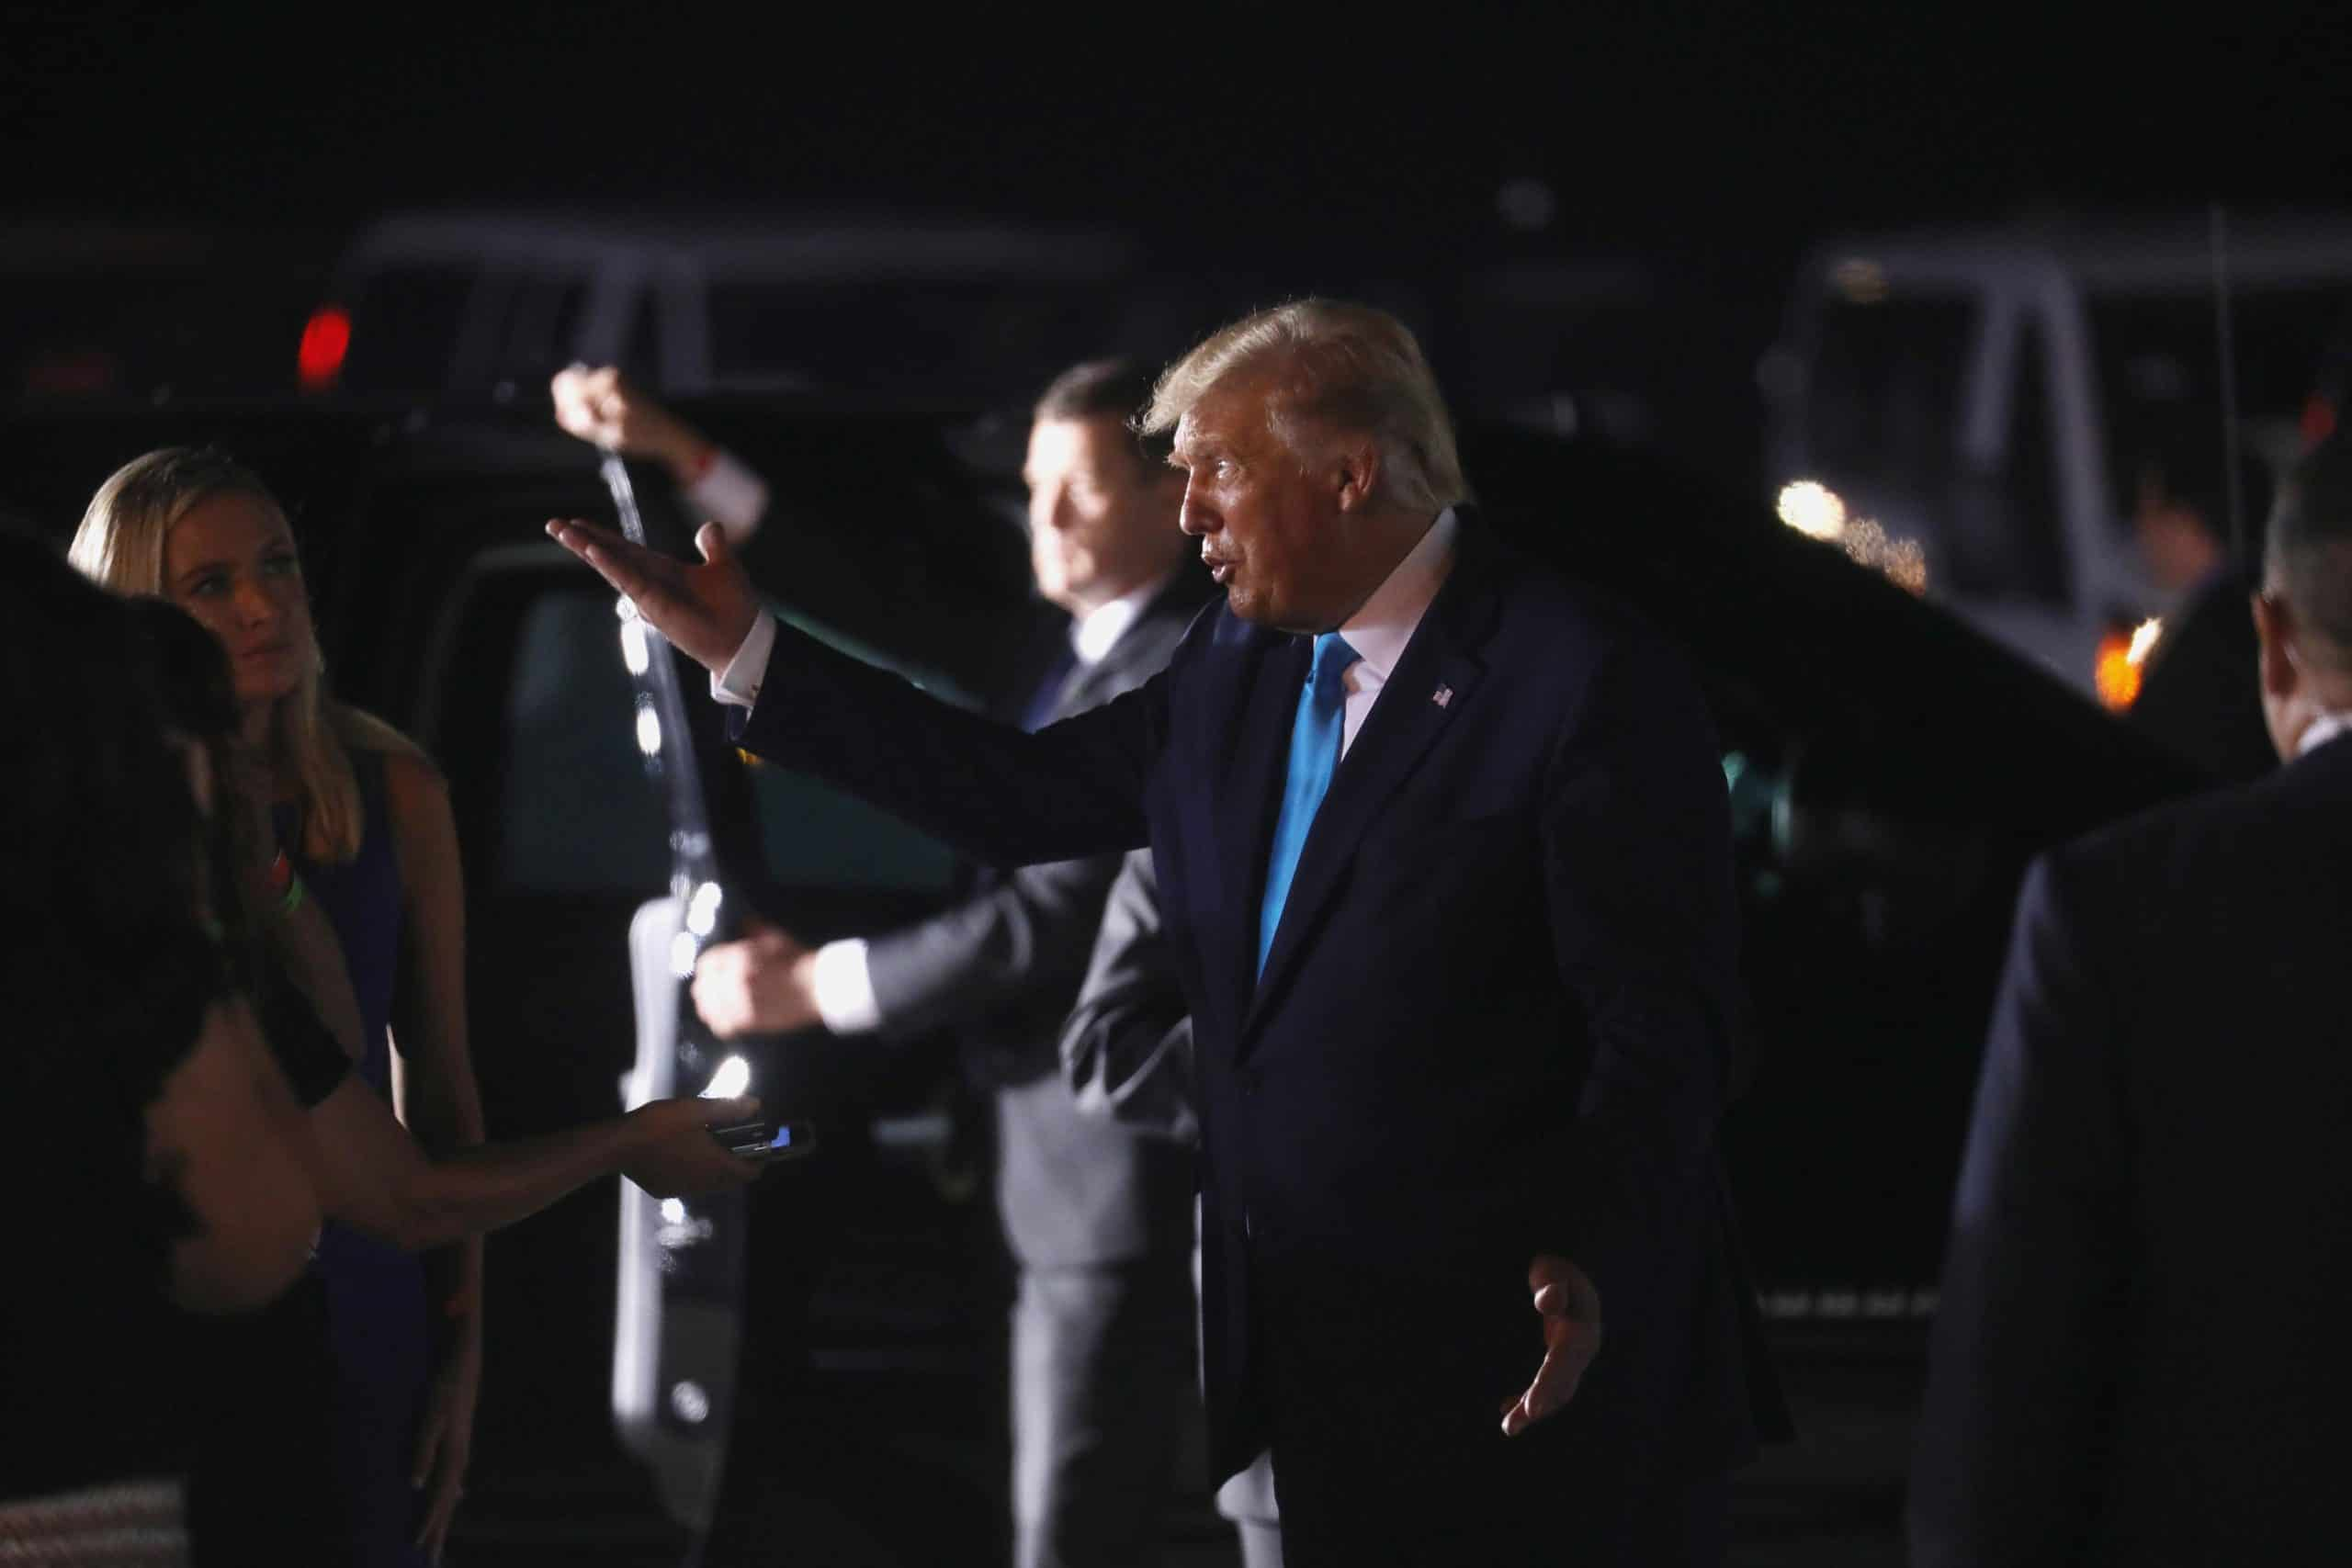 Trump made disparaging remarks about US war dead